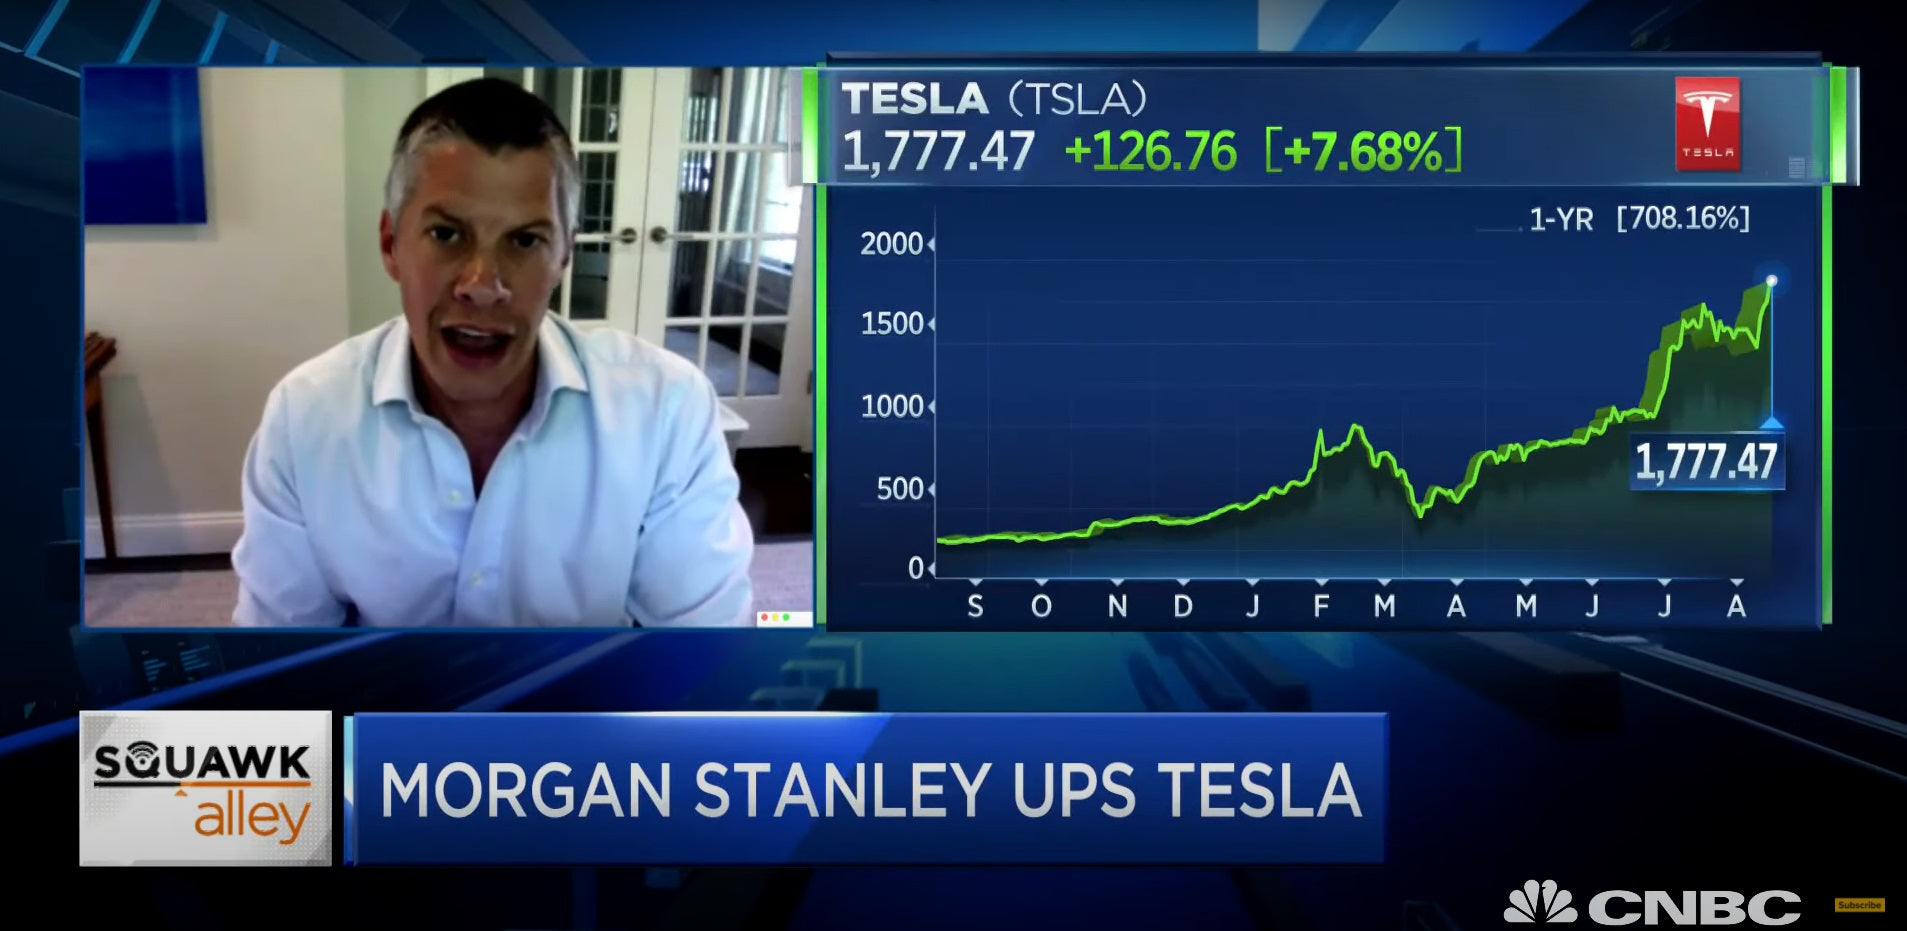 Tesla Has Potential to Become Large Battery Suppler, Says Morgan Stanley